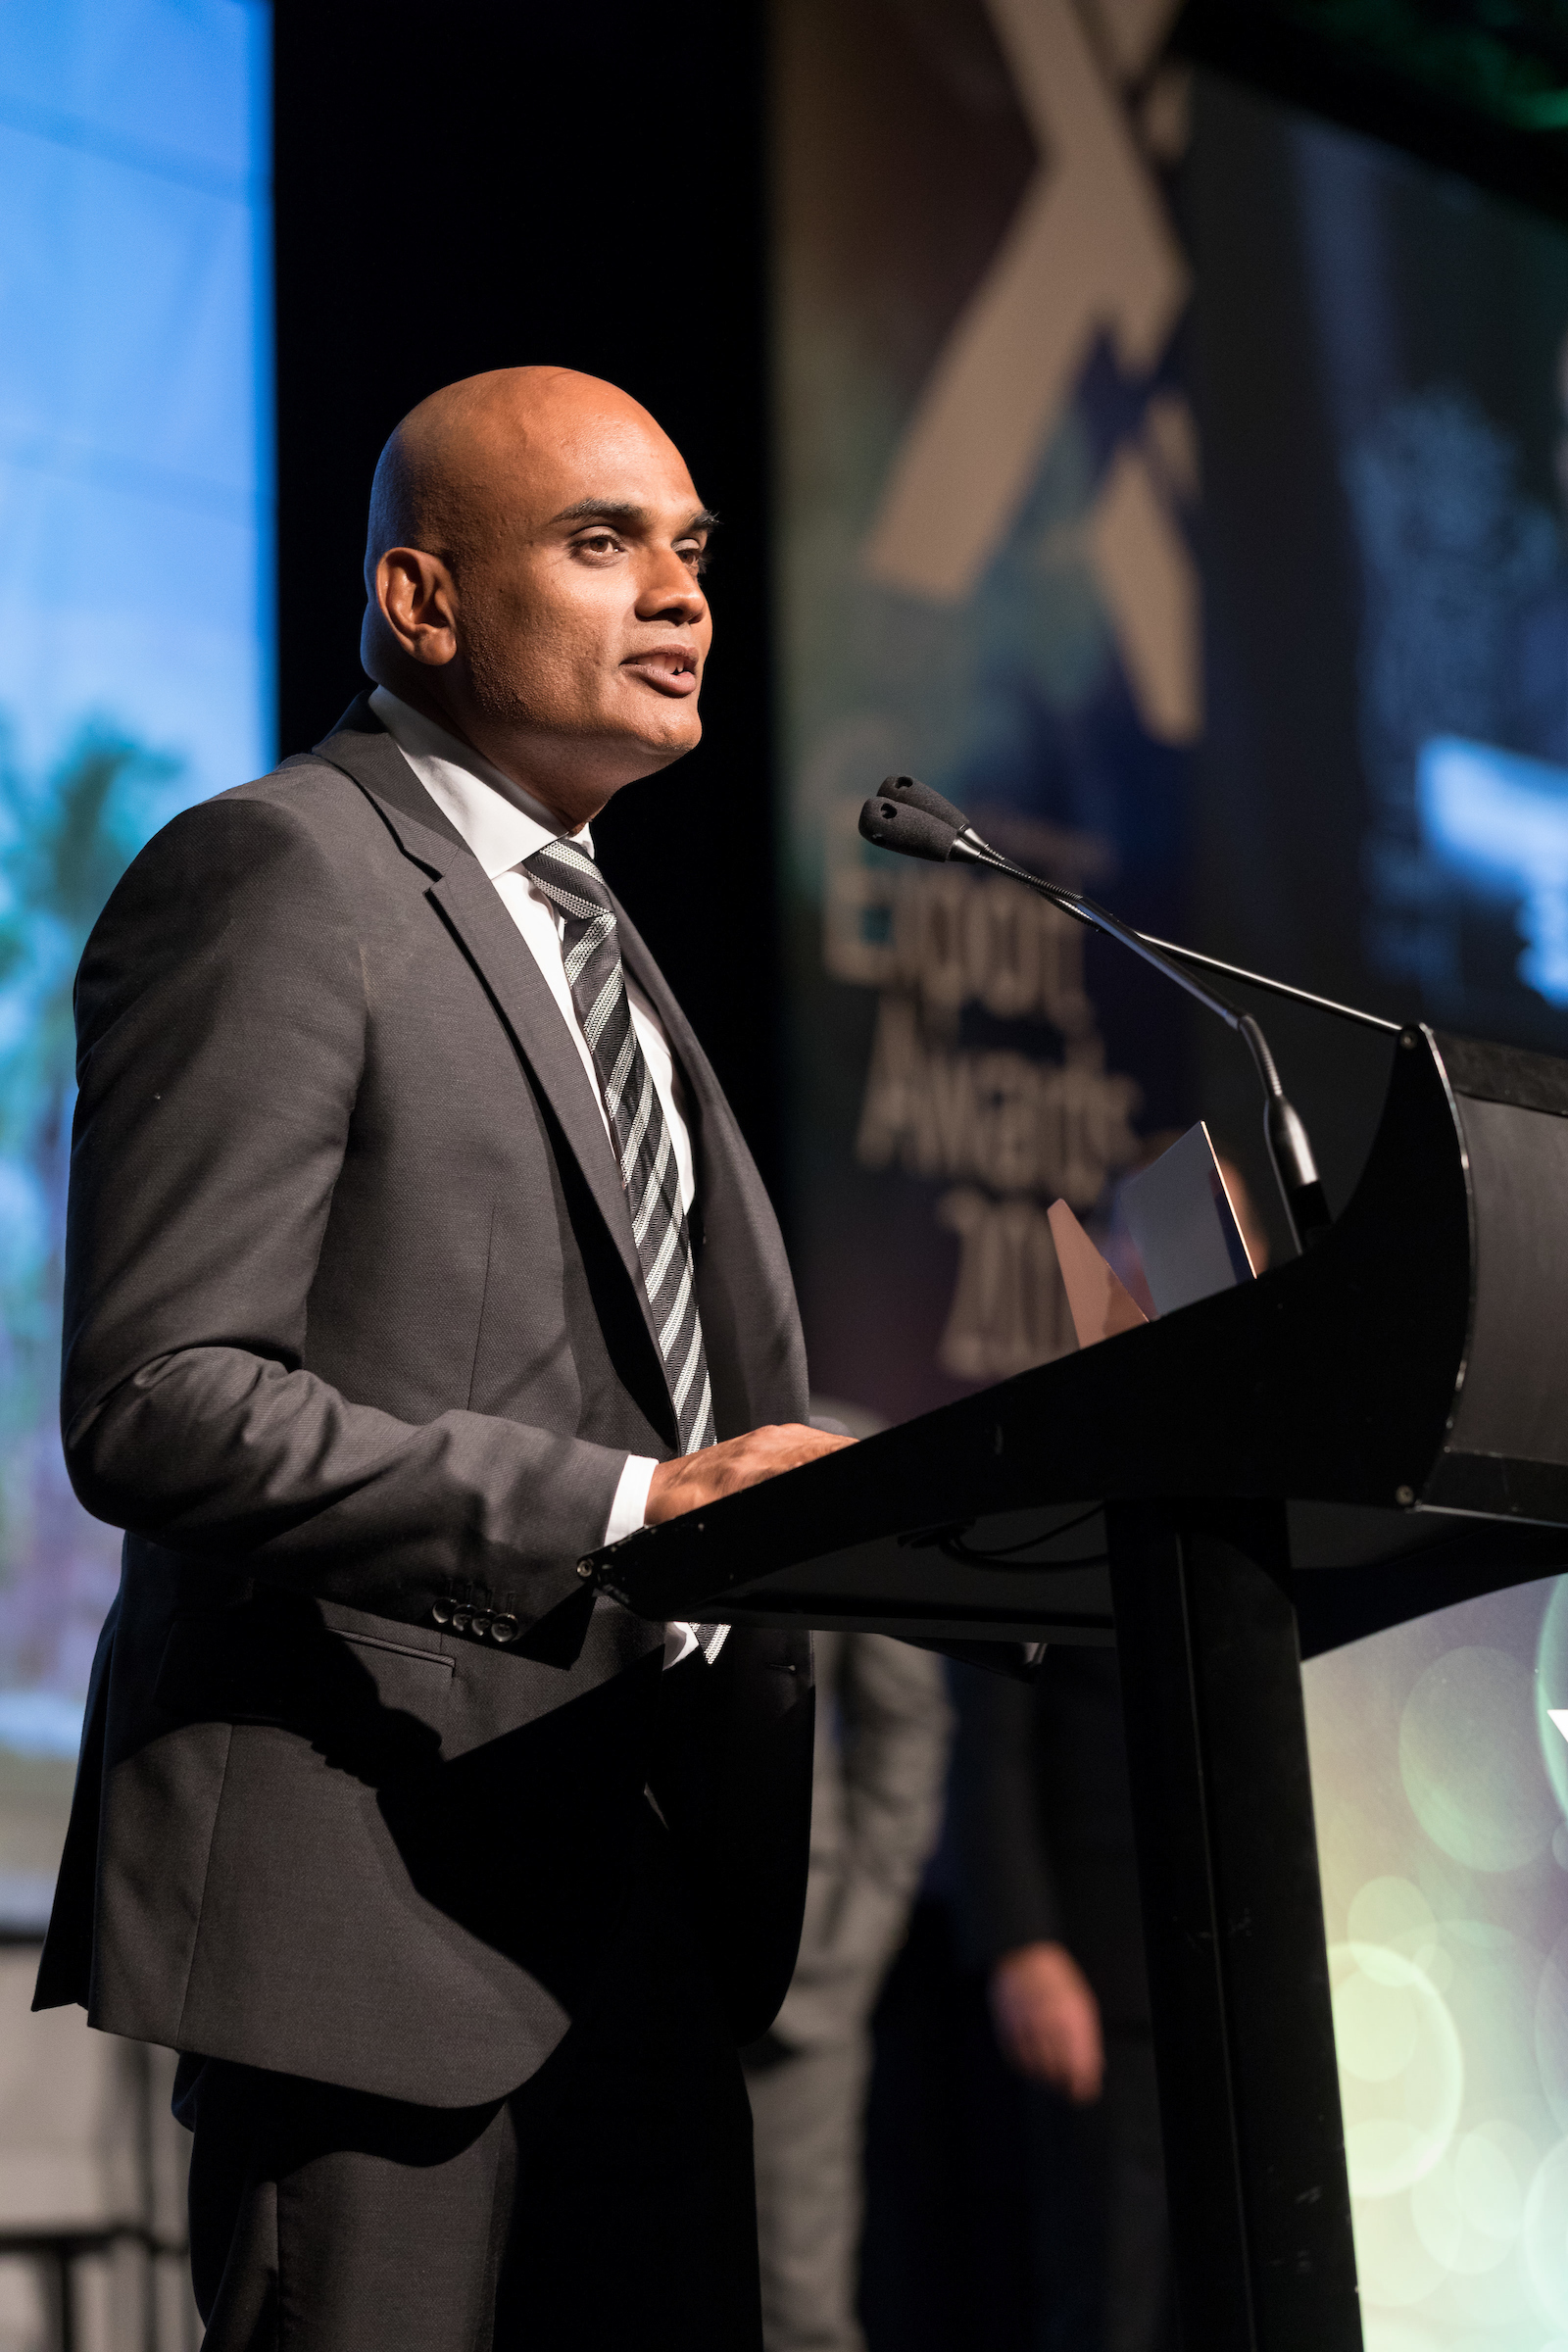 The Premier of Queensland's Export Awards - October 20, 2016: Brisbane Convention and Exhibition Centre, Brisbane, Queensland, Australia. Credit: Pat Brunet / Event Photos Australia